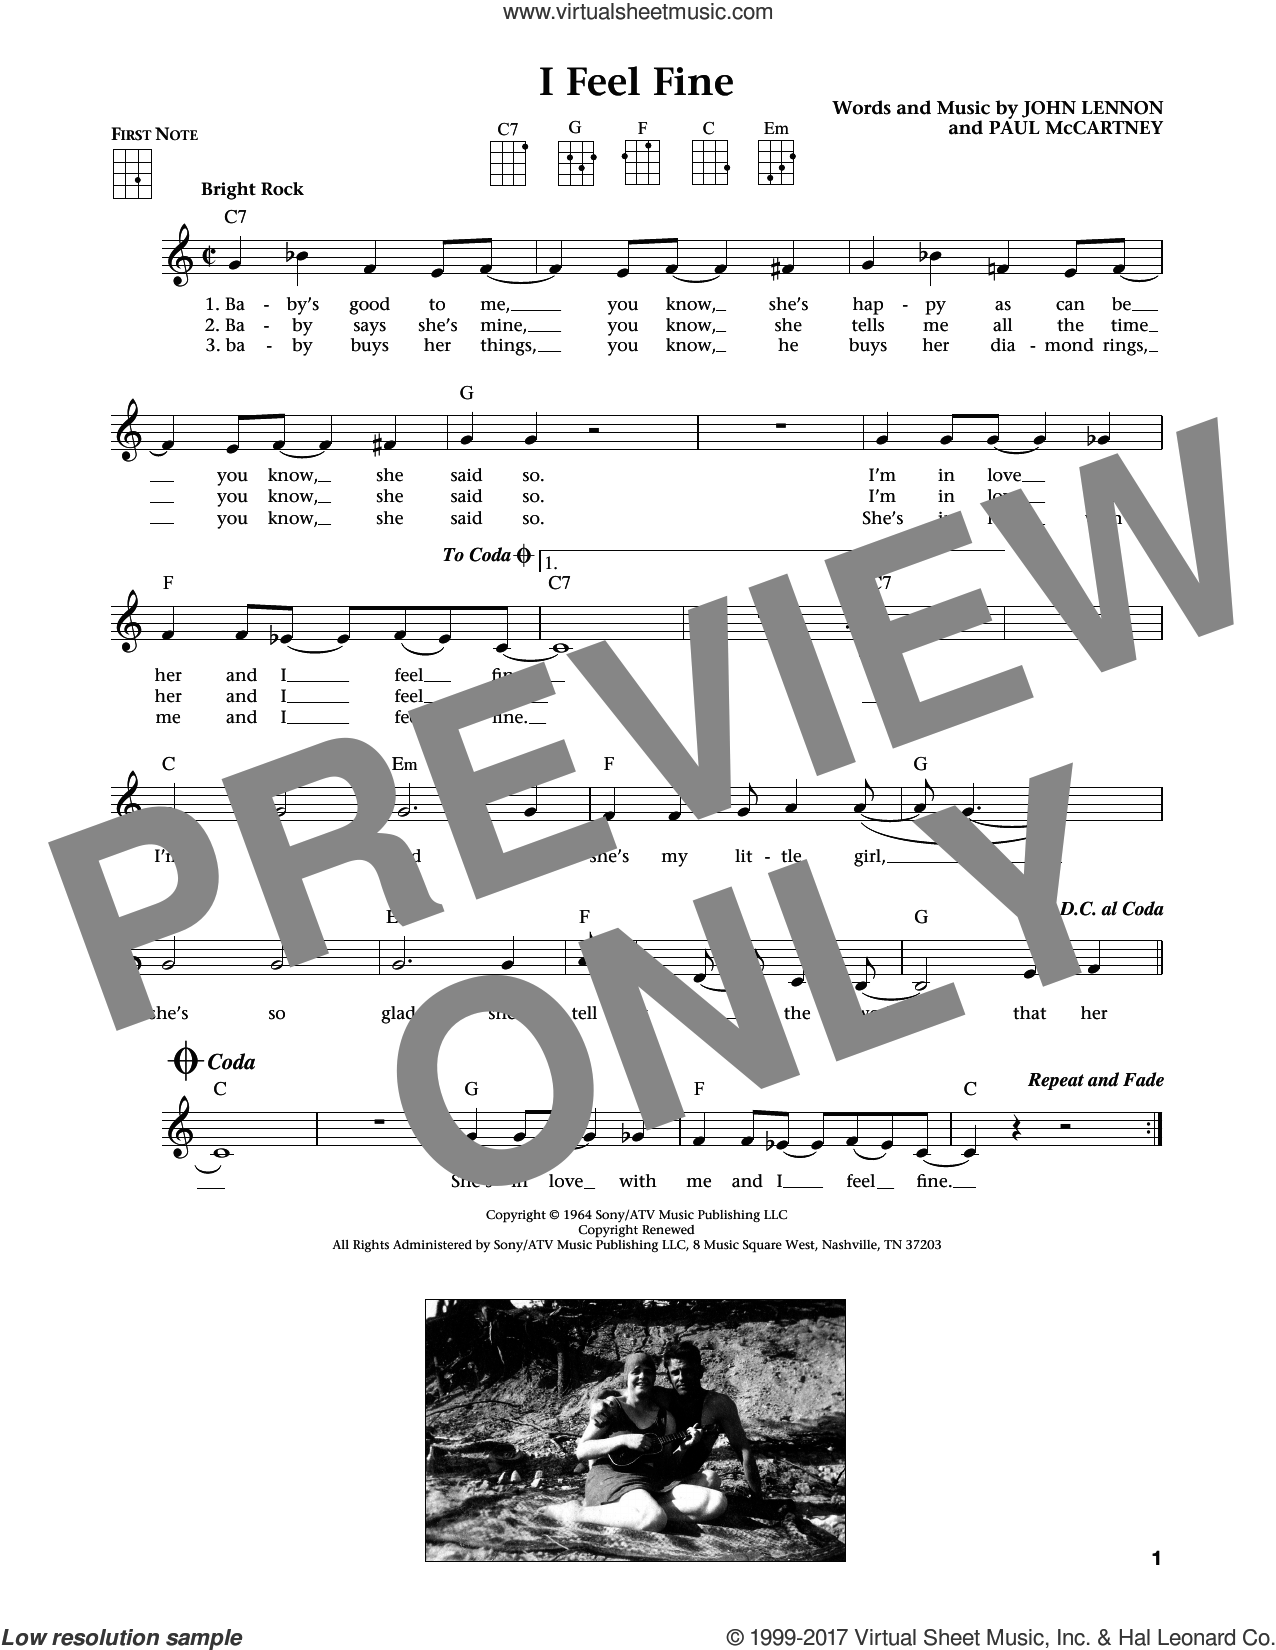 I Feel Fine (from The Daily Ukulele) (arr. Liz and Jim Beloff) sheet music for ukulele by The Beatles, Jim Beloff, Liz Beloff, John Lennon and Paul McCartney, intermediate skill level